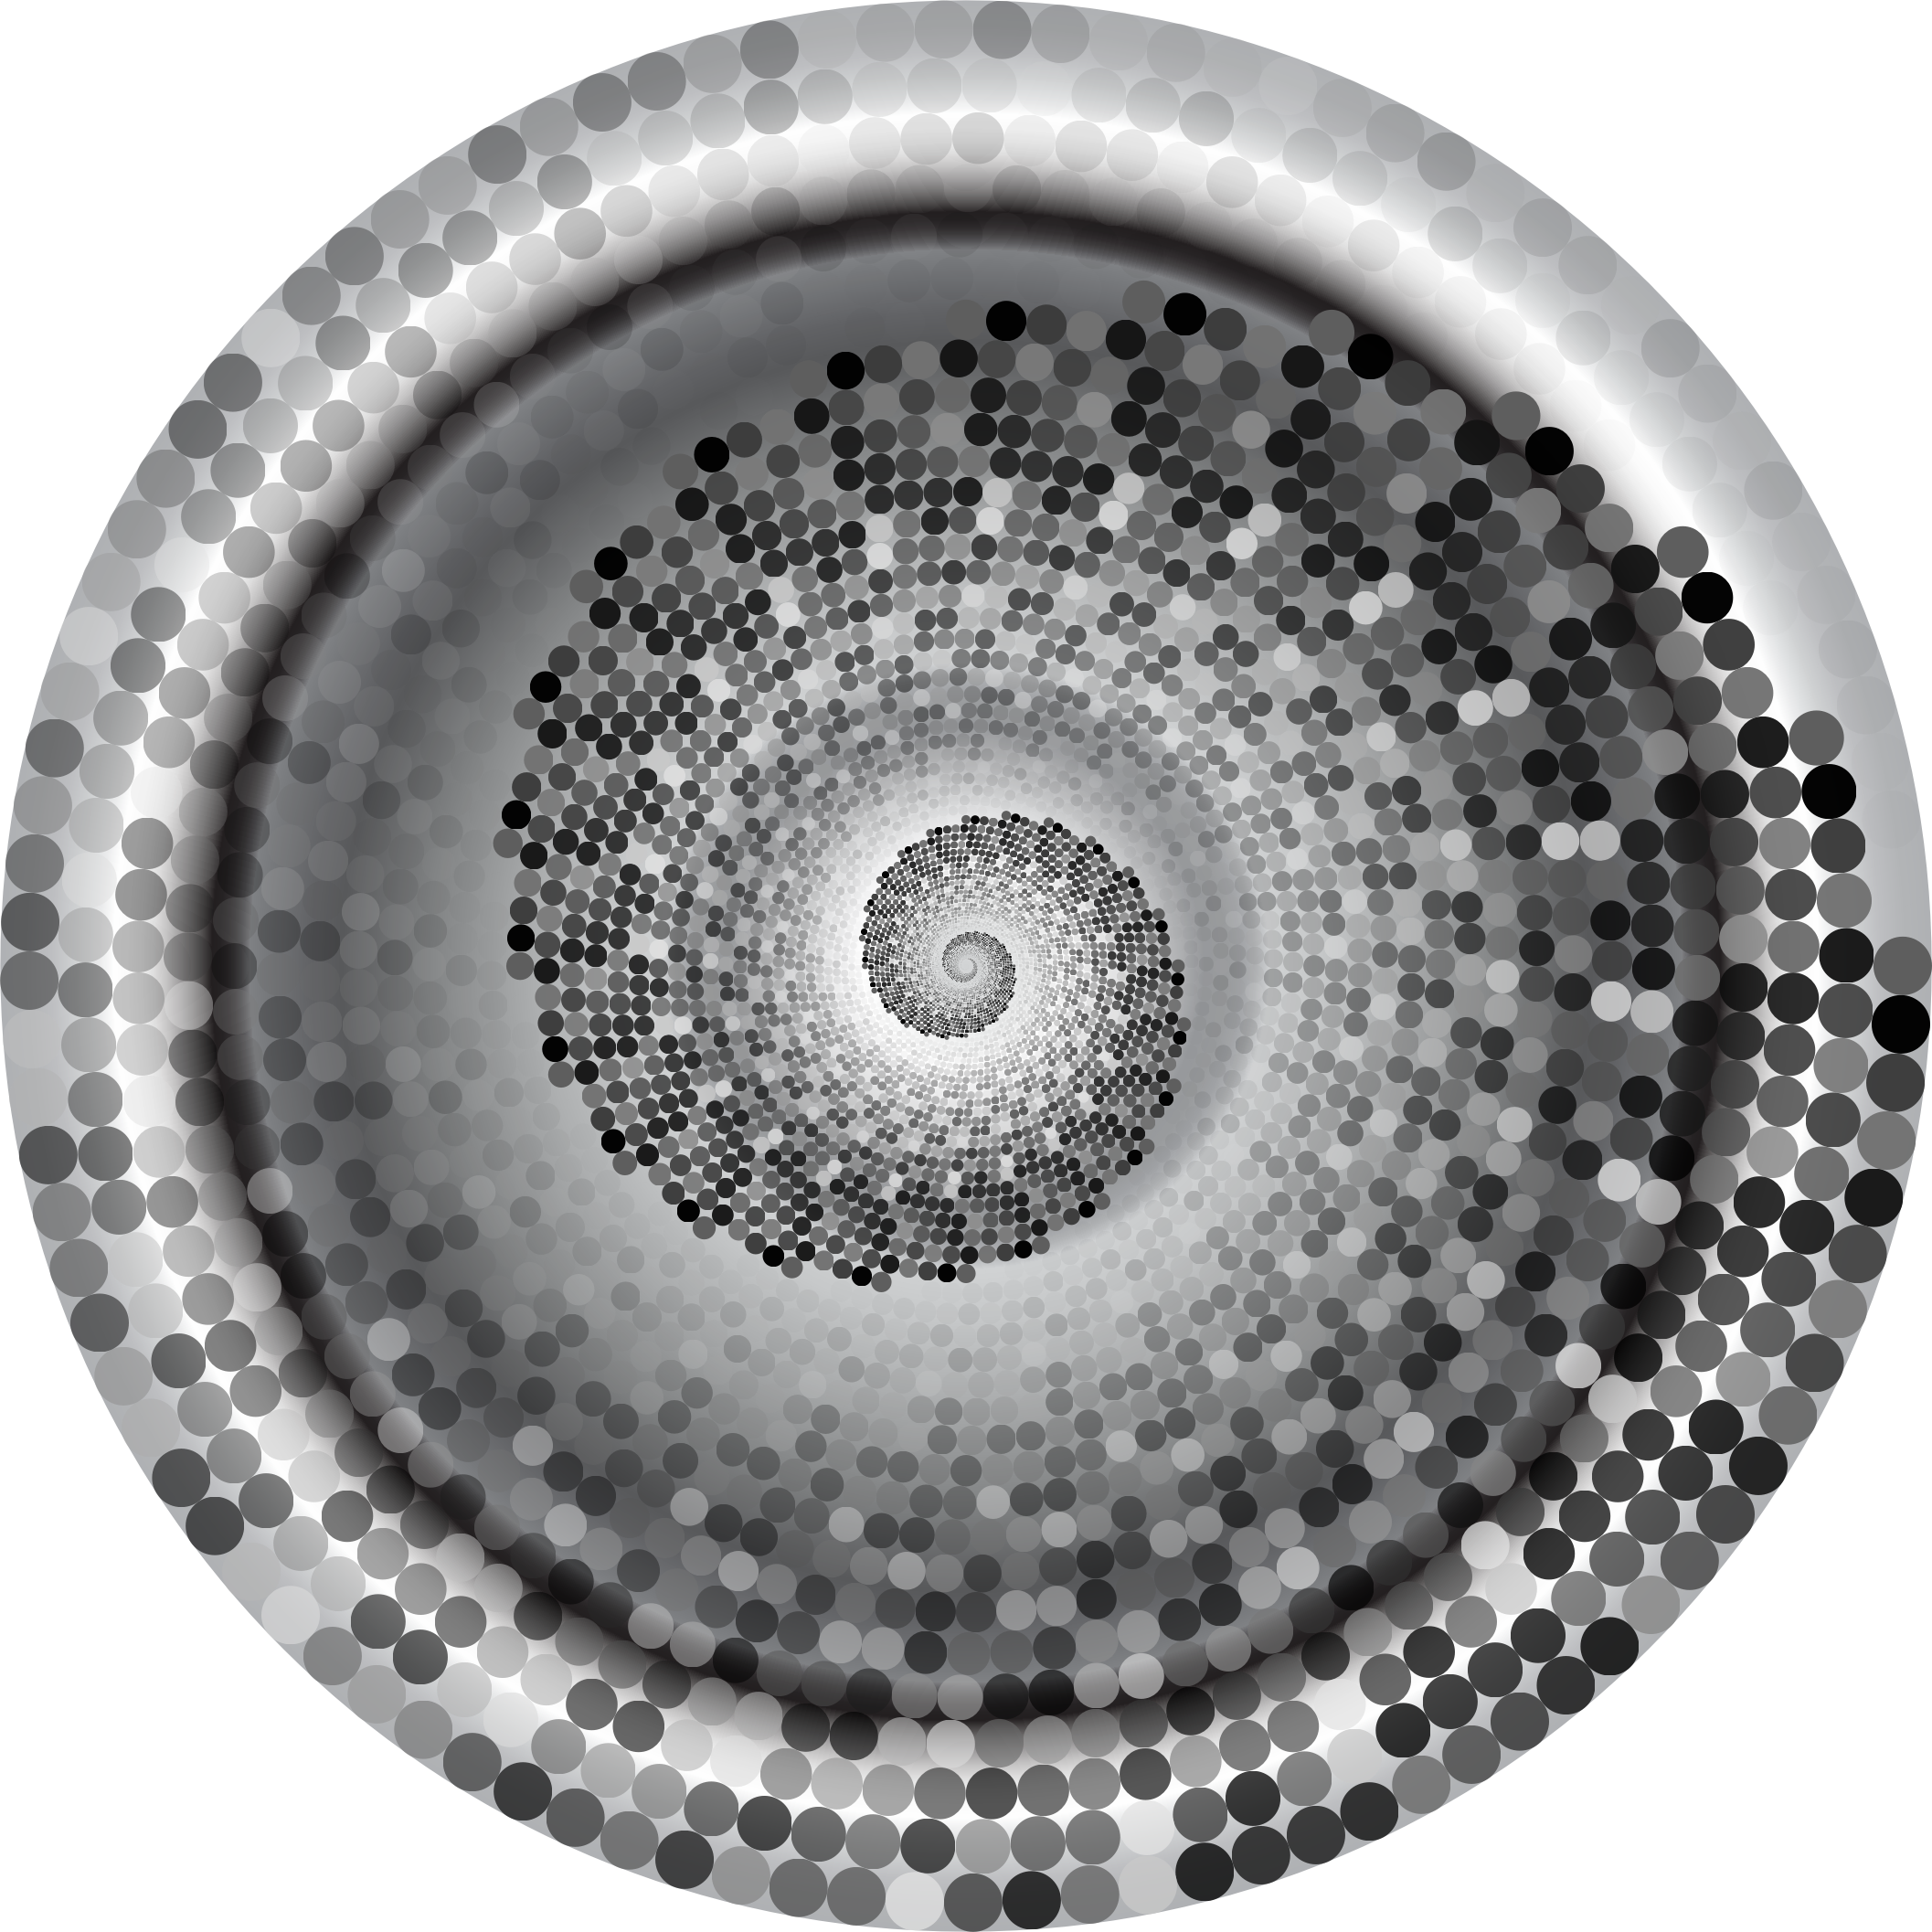 Grayscale Swirling Circles Vortex Variation 4 by GDJ